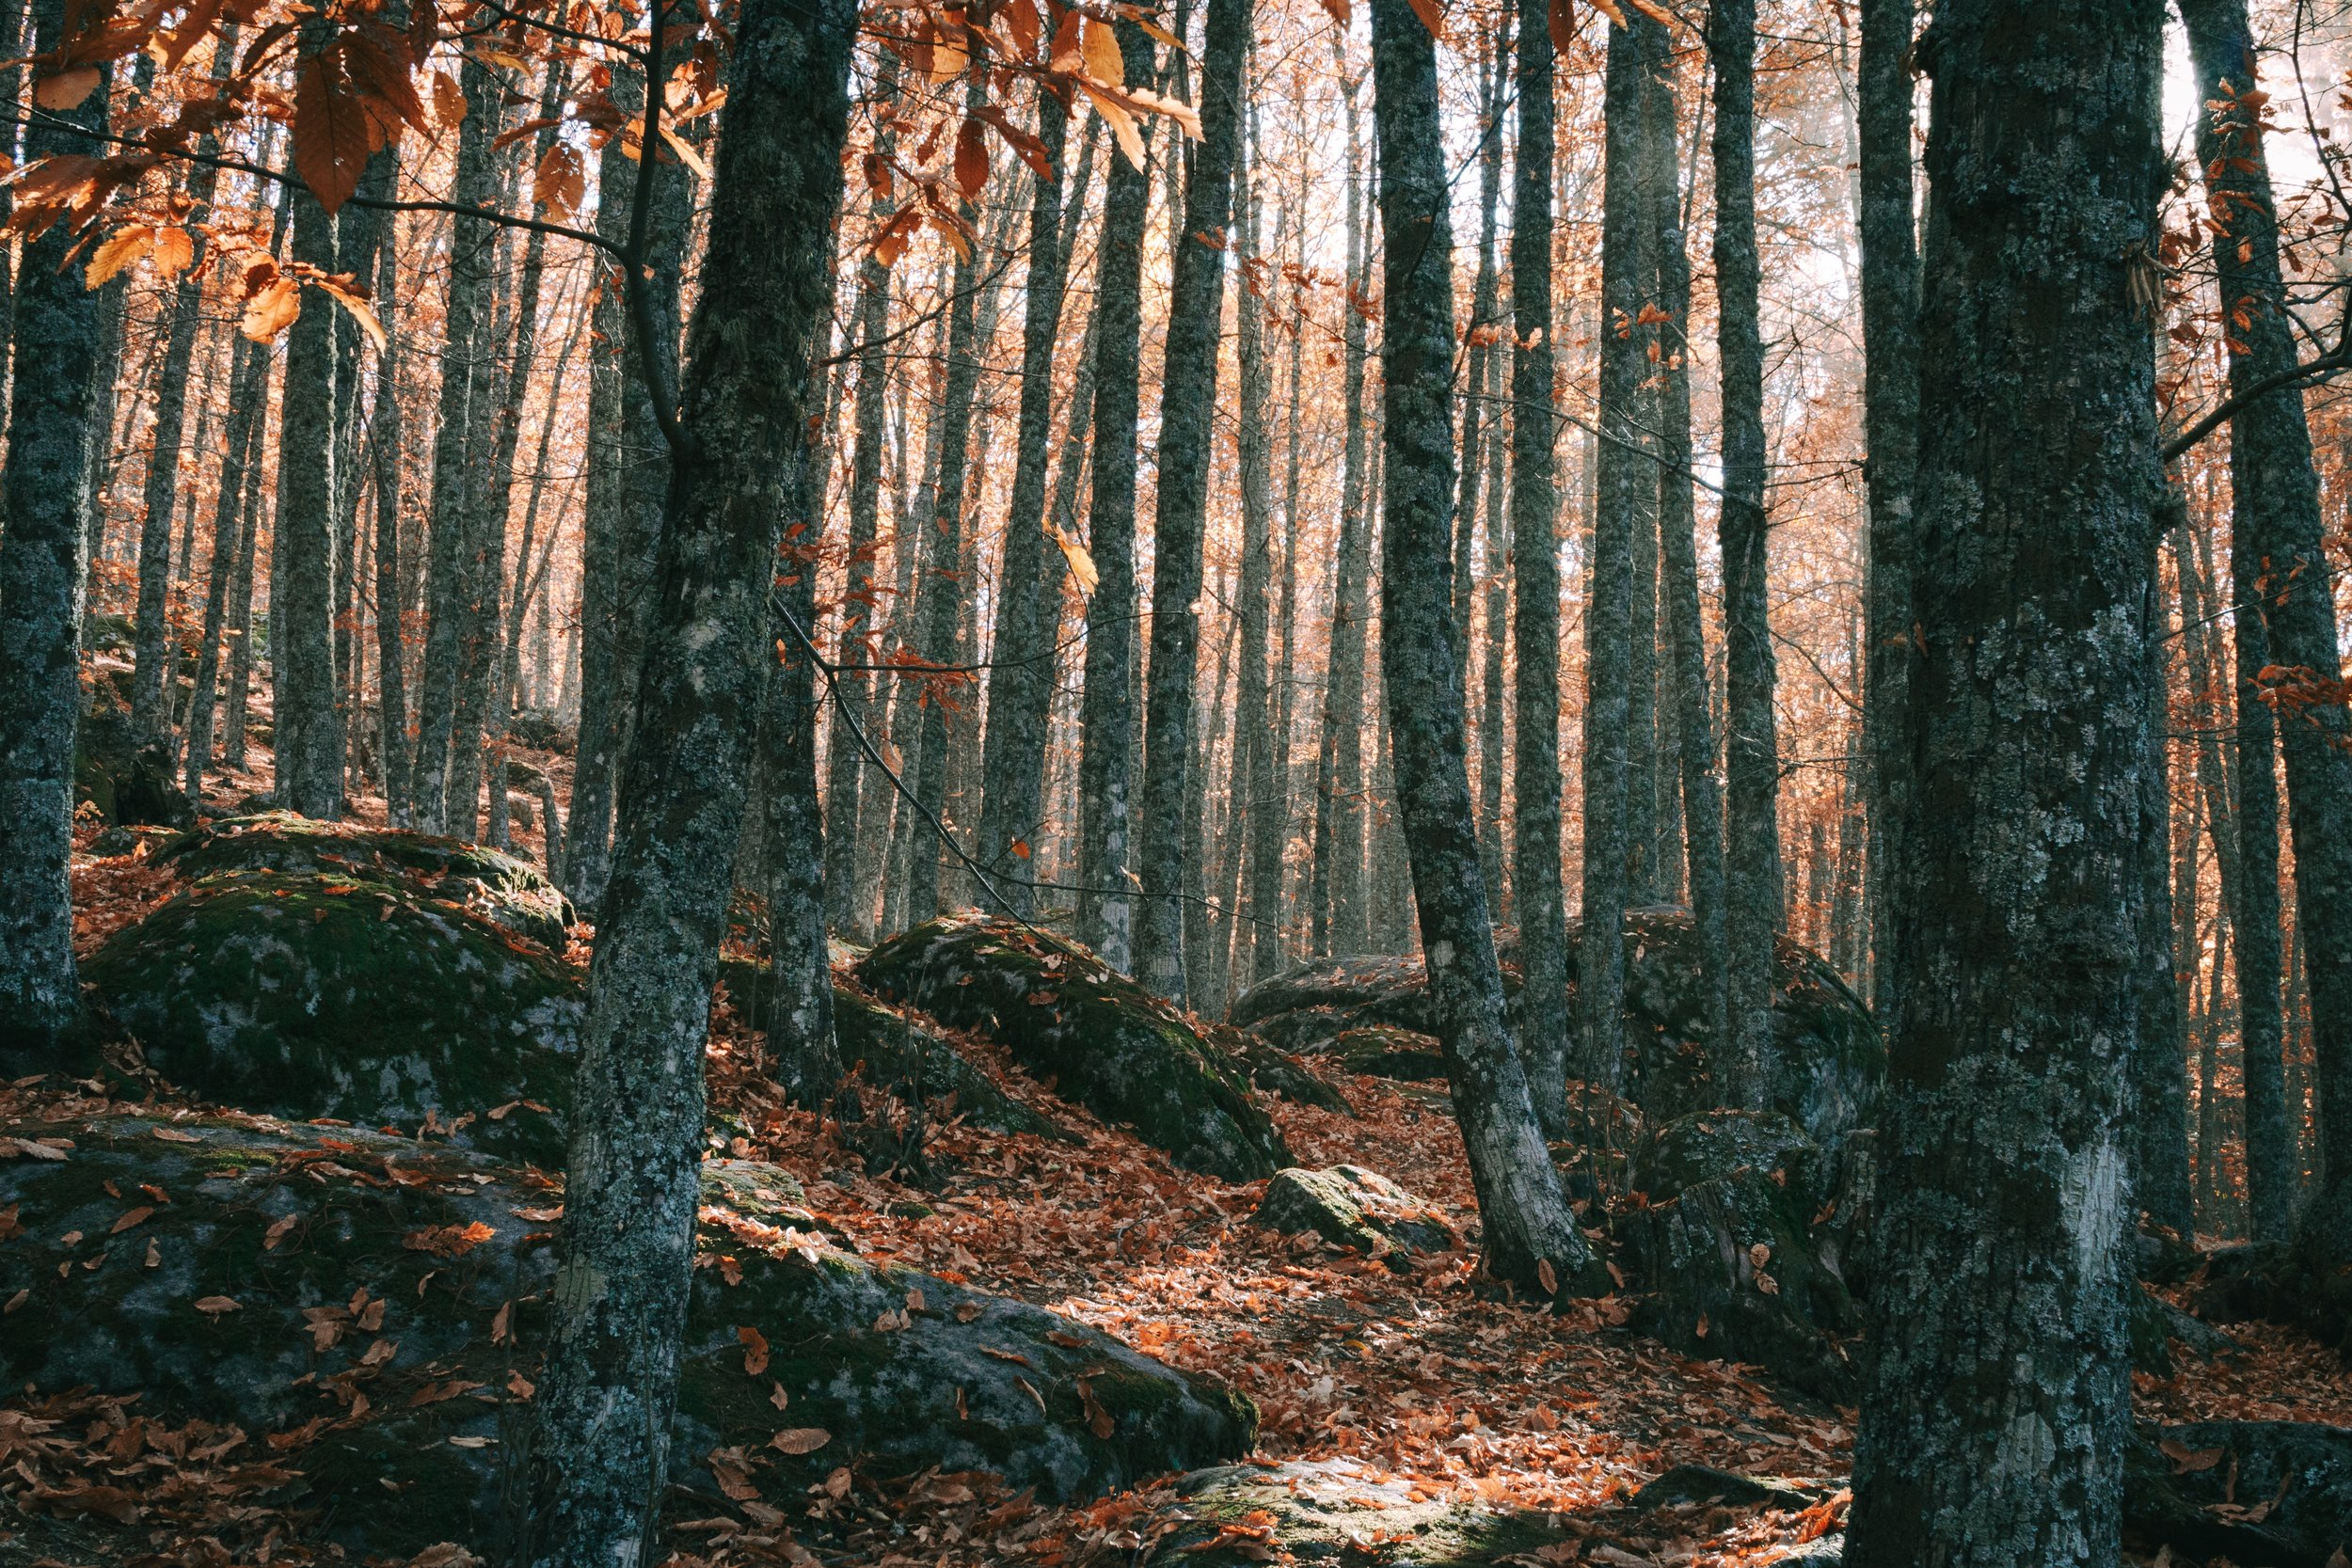 Forest Bathing: A Retreat to Nature cAn boost immunity and mood - NPR, July 2017